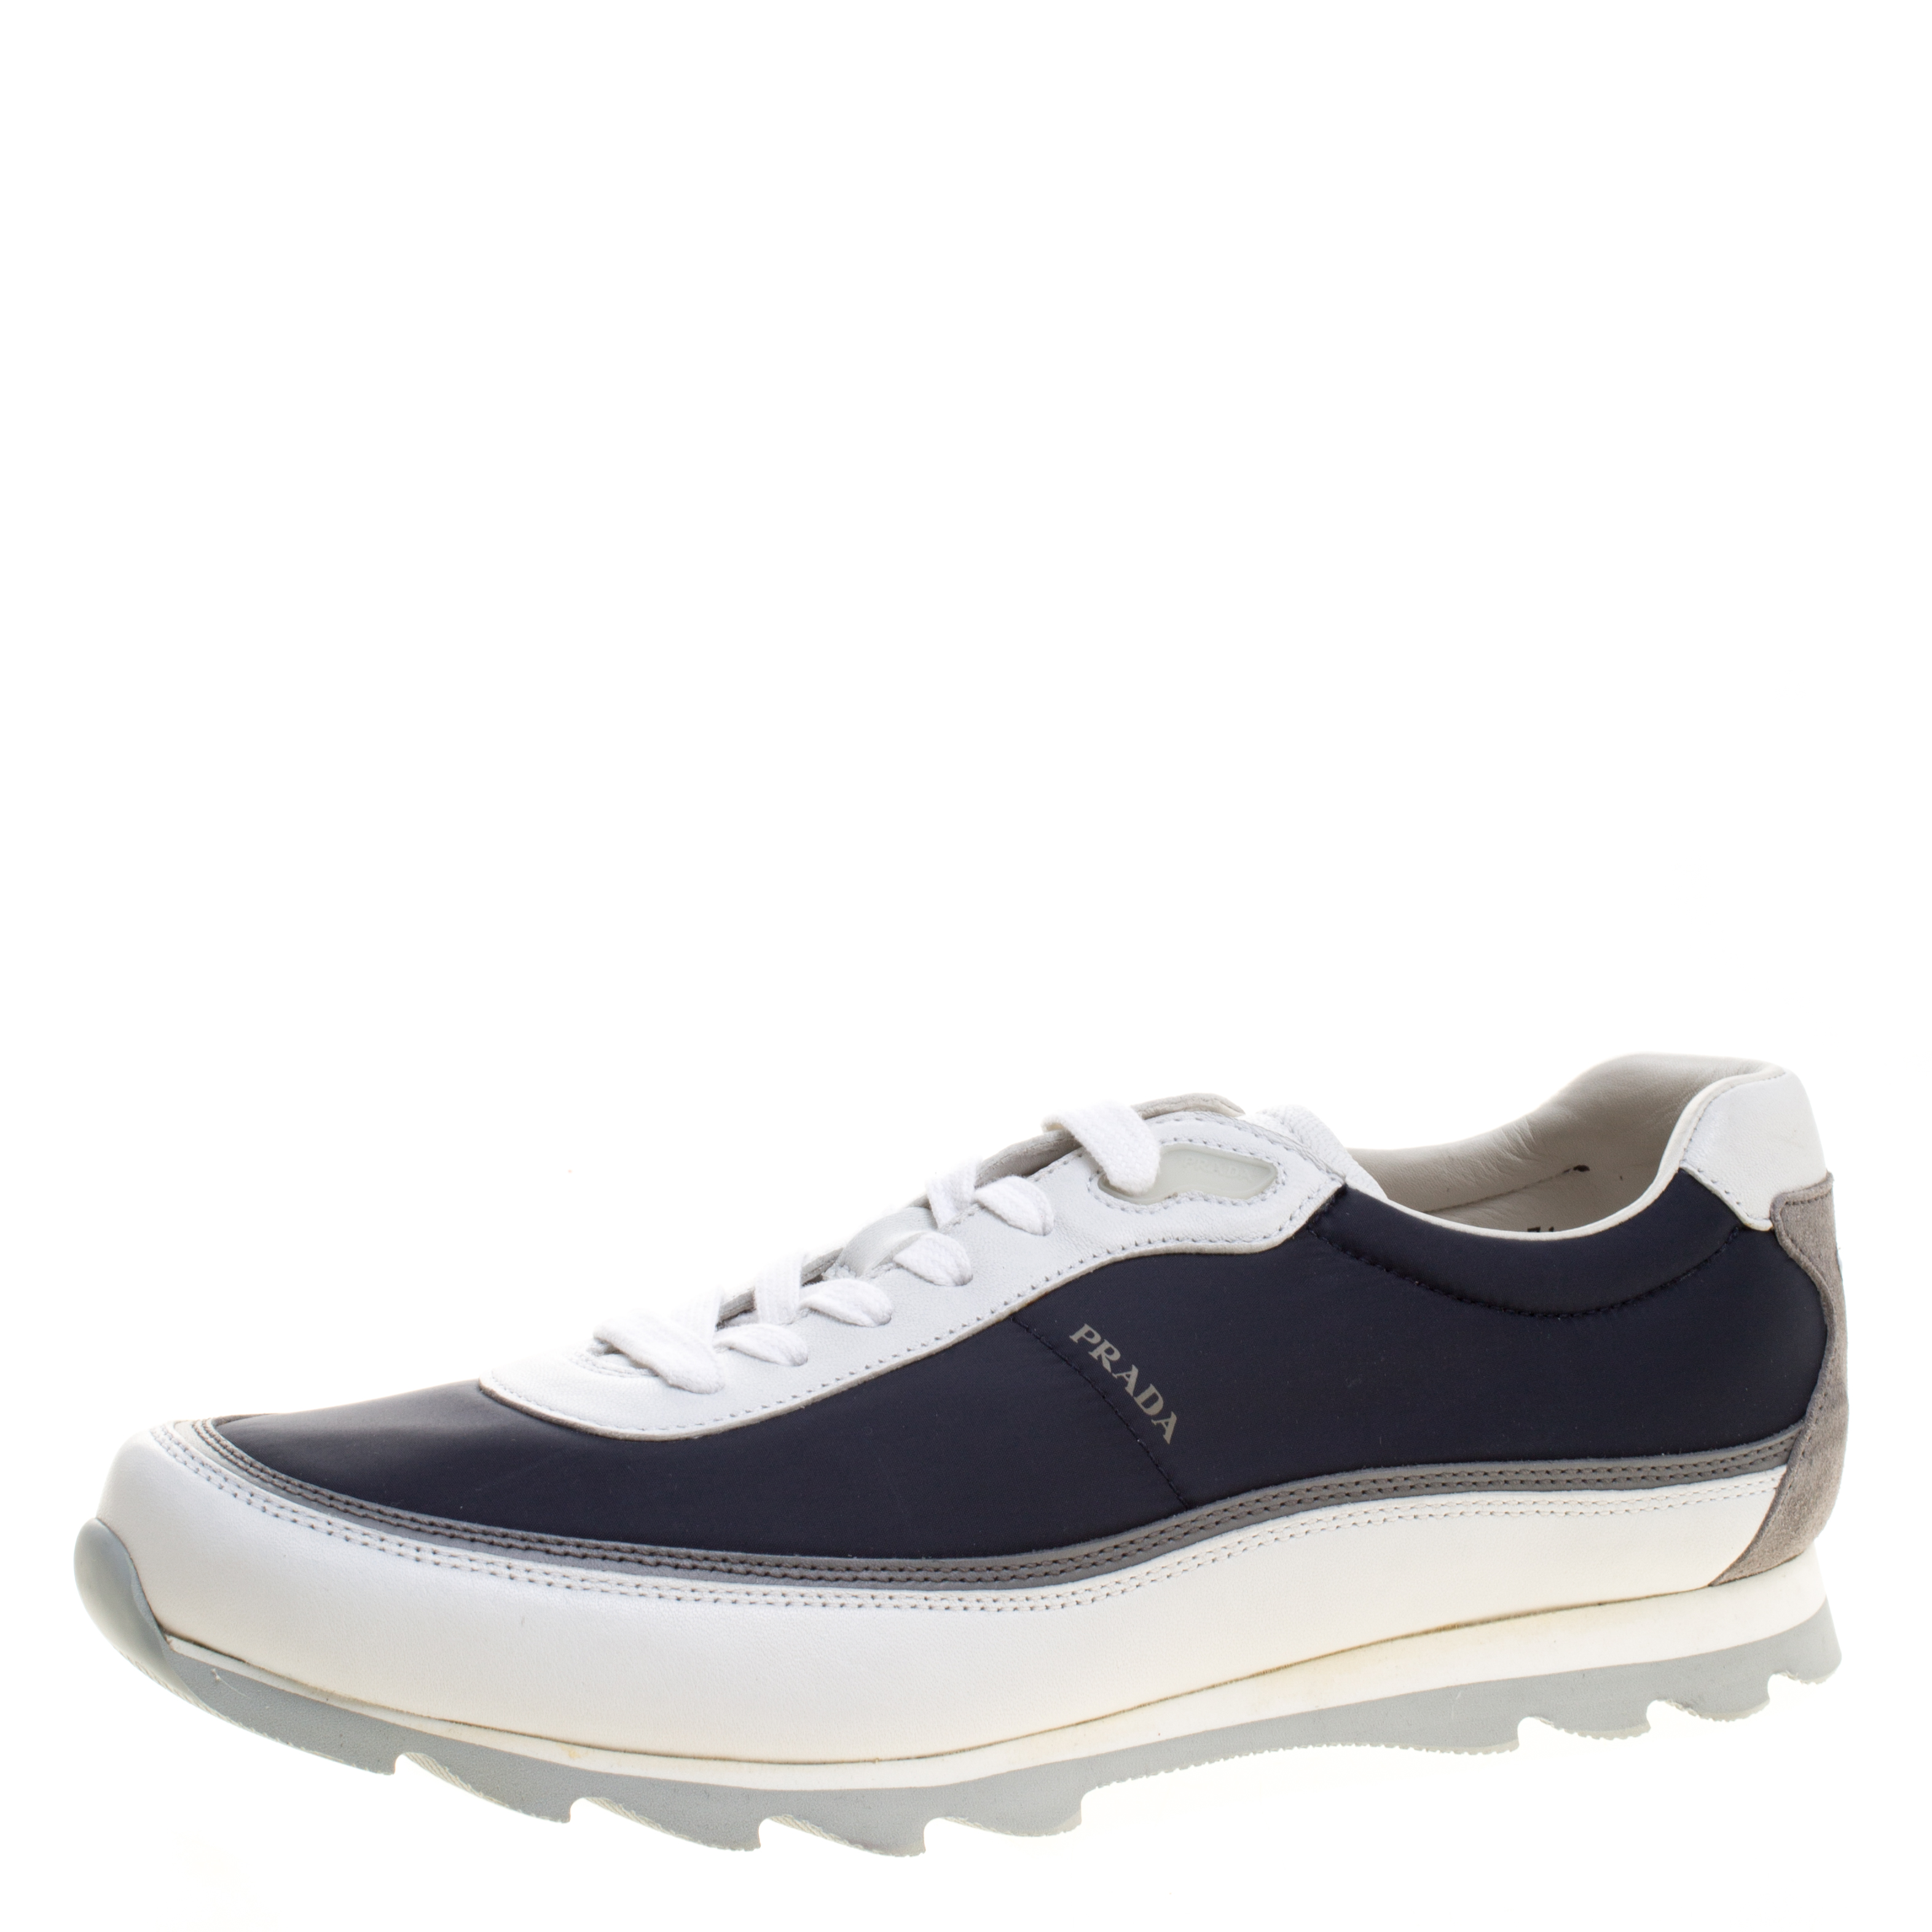 8e48ac723 Buy Prada Sport Tricolor Fabric and Leather Low Top Sneakers Size ...